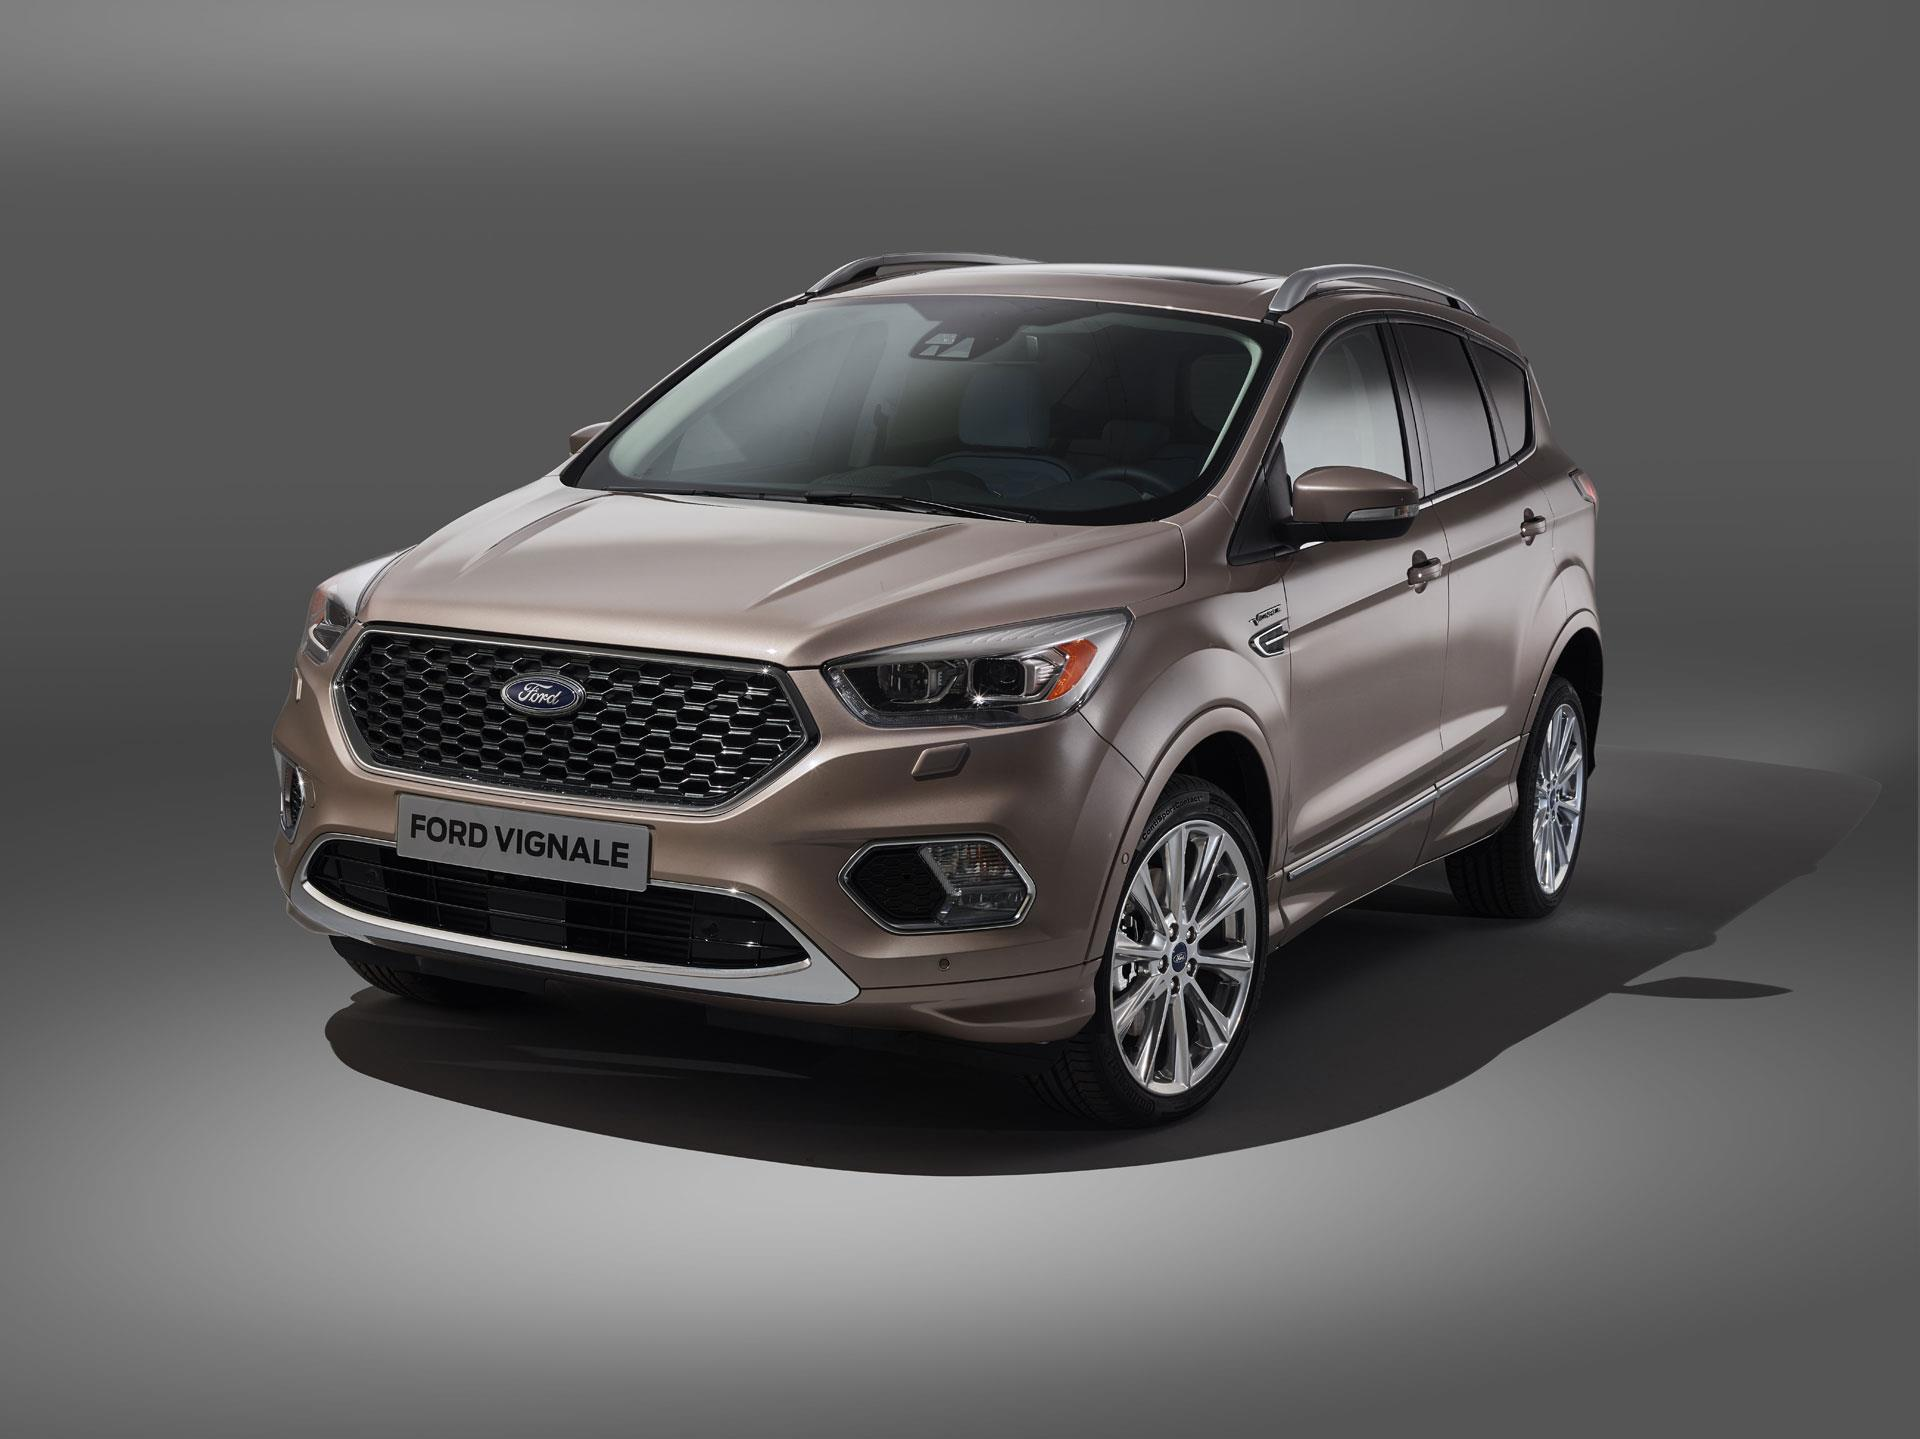 2016 ford kuga vignale news and information. Black Bedroom Furniture Sets. Home Design Ideas